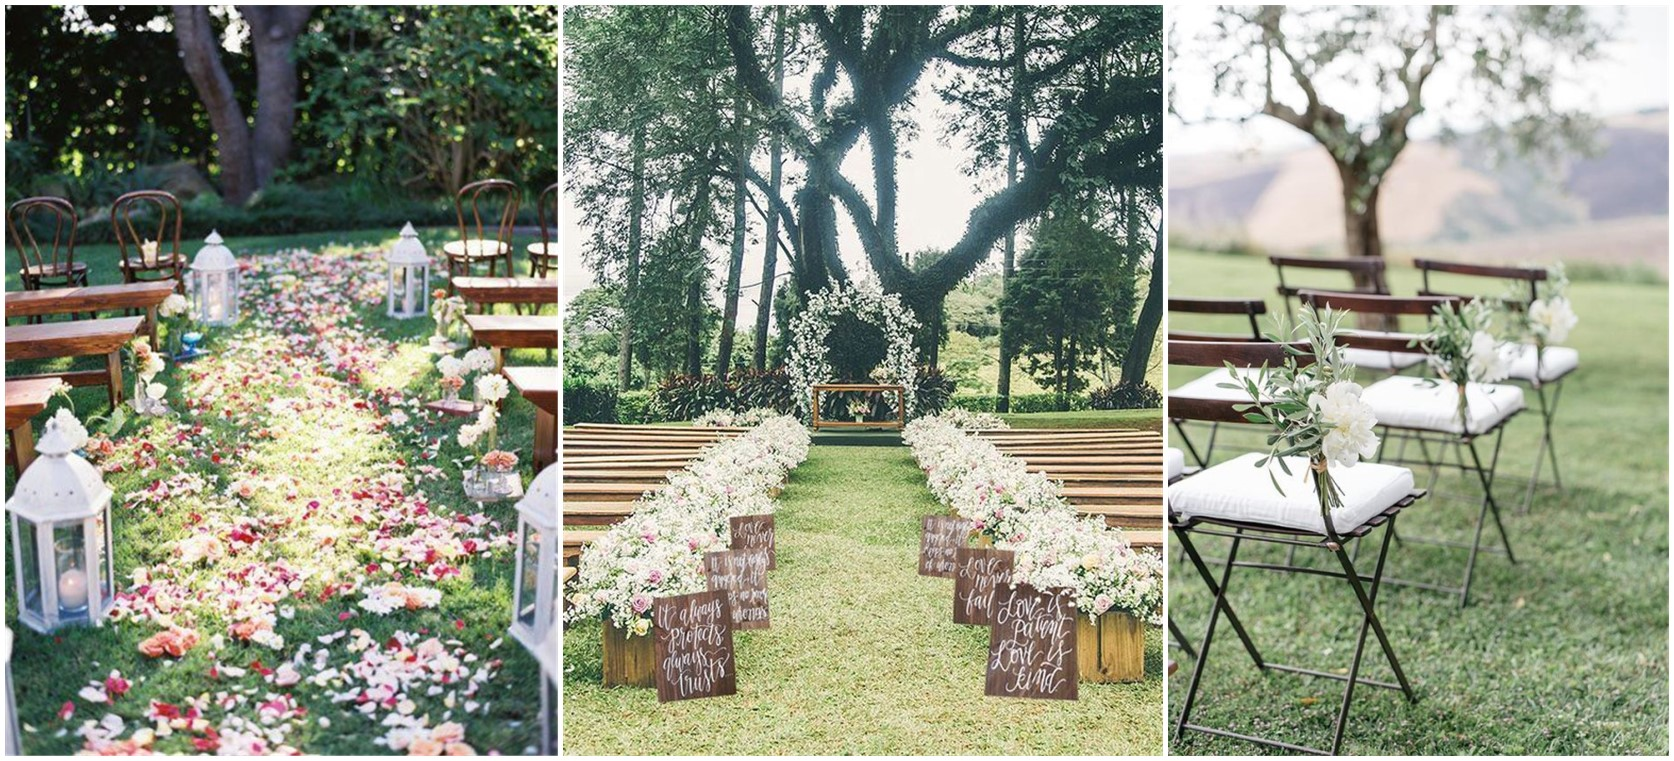 Outdoor Wedding Ceremony Decoration Pictures Image